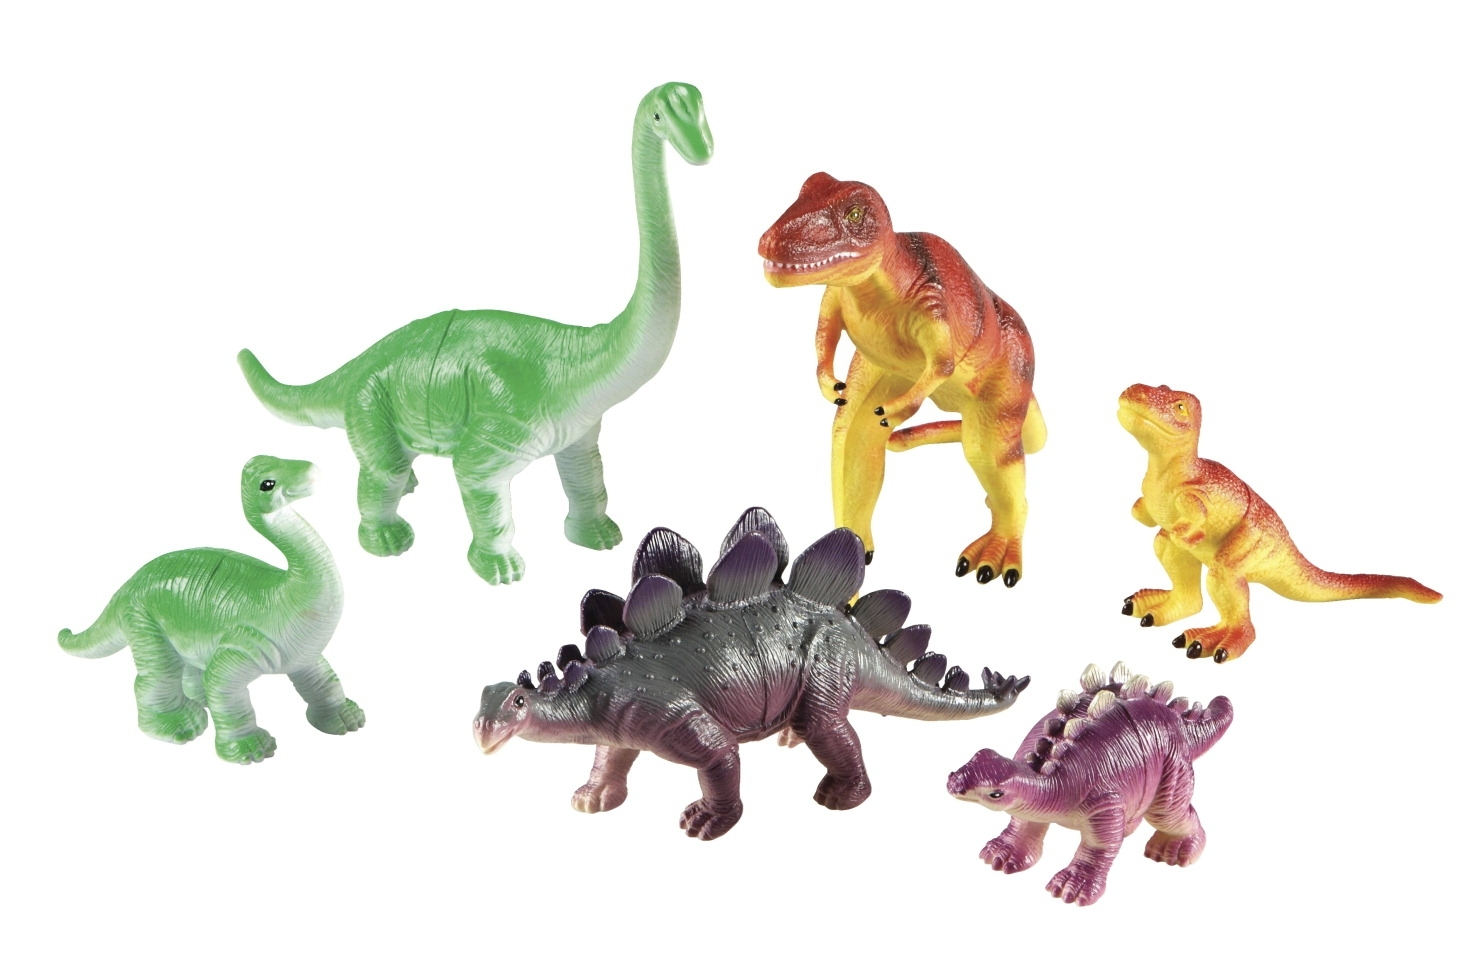 Learning: Supplies Dramatic Play Best Toys For Birthdays Puppet Bear Cub Jumbo Stuffed Animals - 1533481 - Learning Resources Jumbo Dinosaurs: Mommas And Babies; Set Of 6 1533481